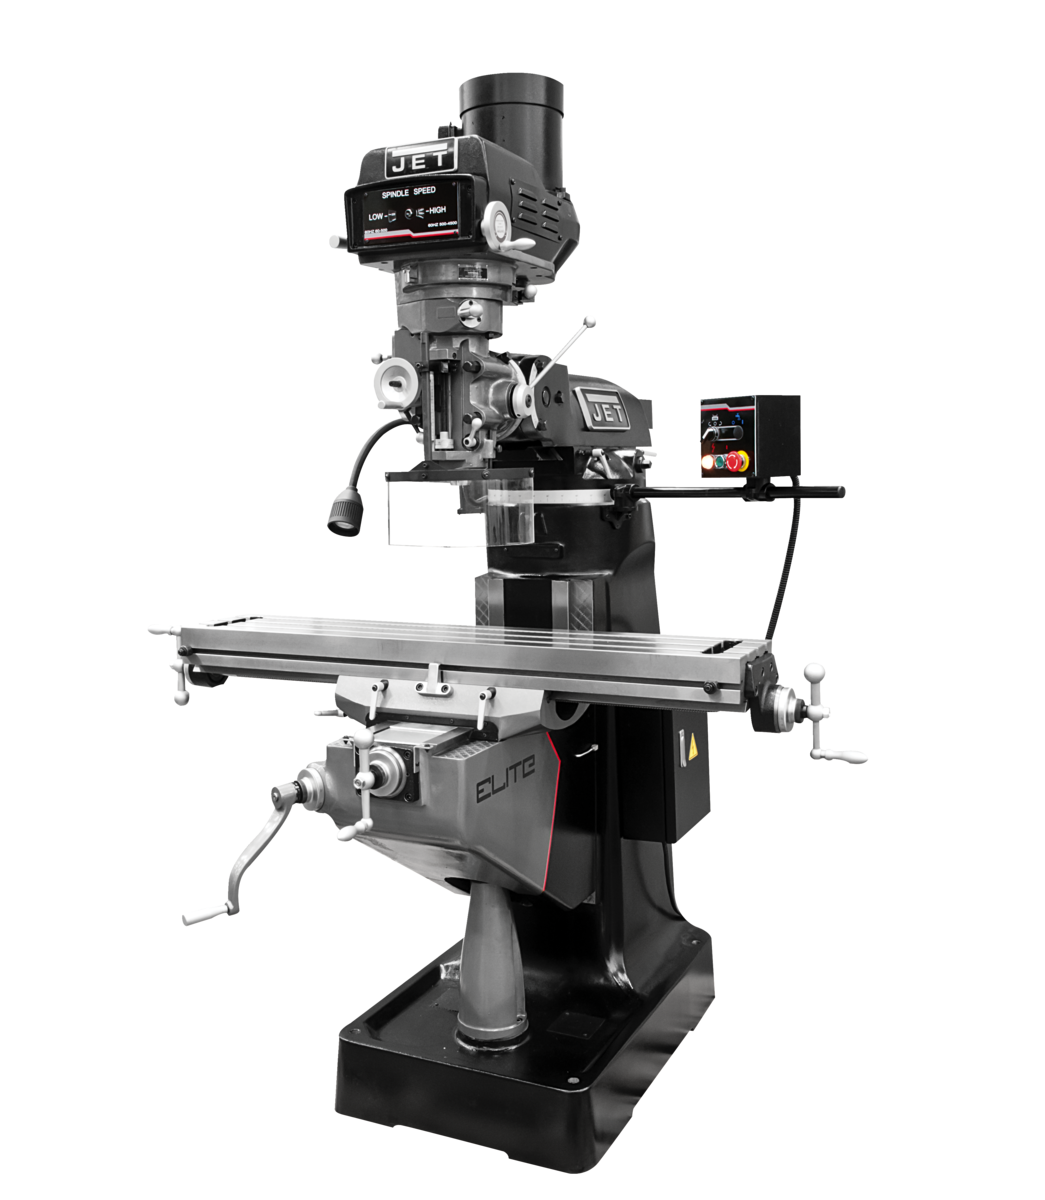 ETM-949 Mill with 2-Axis ACU-RITE 303  DRO and X, Y-Axis JET Powerfeeds